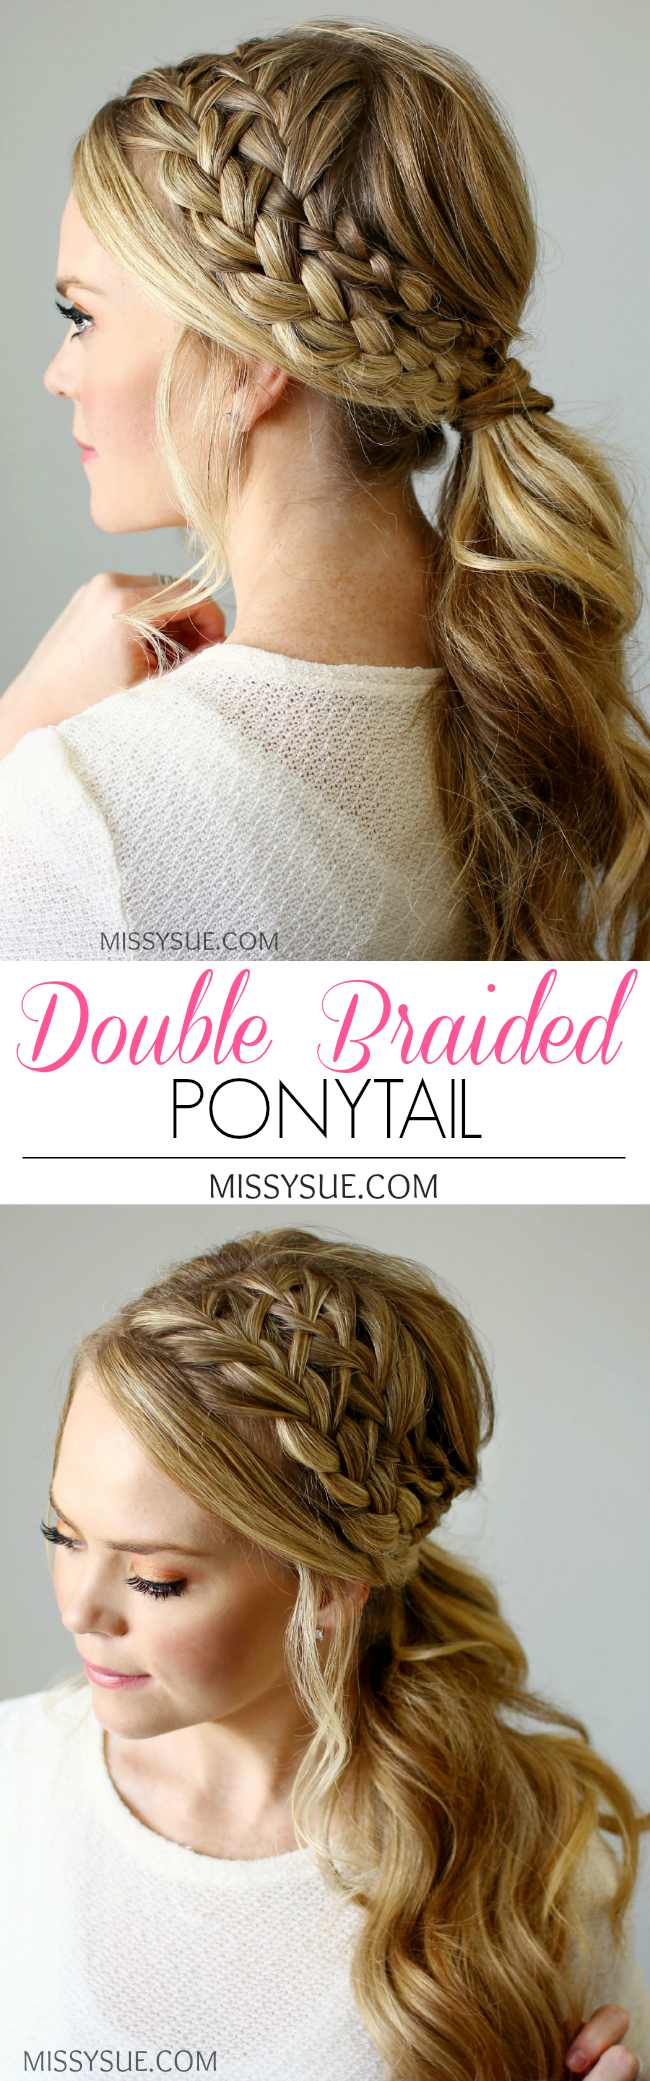 Easy Diy Hairstyles For Medium And Long Hair1 14